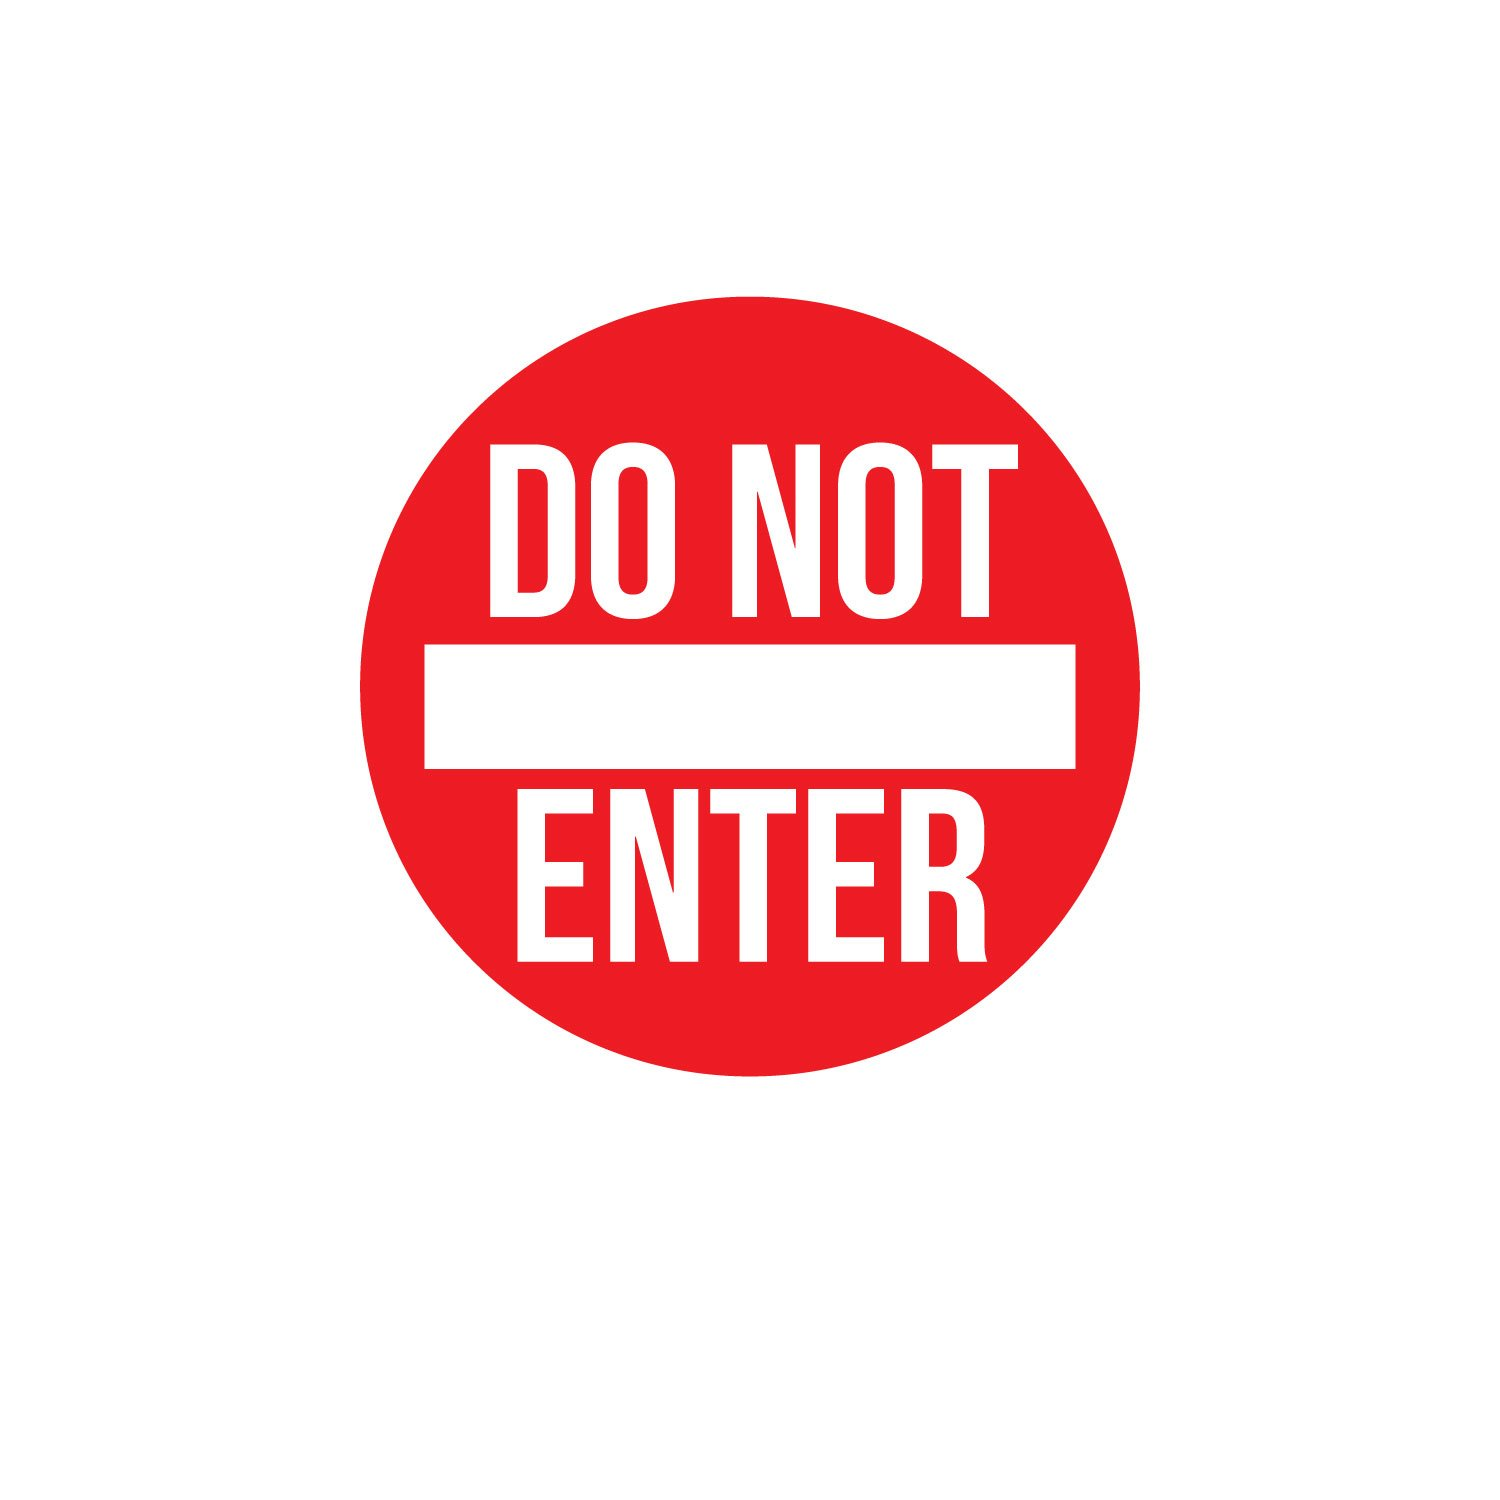 Vinyl Wall Art Decal - Do Not Enter Sign - 12'' x 12'' - Teen Boys Girls Bedroom Door Sticker Decals - Home Decor for Office Door Window Dorm Room